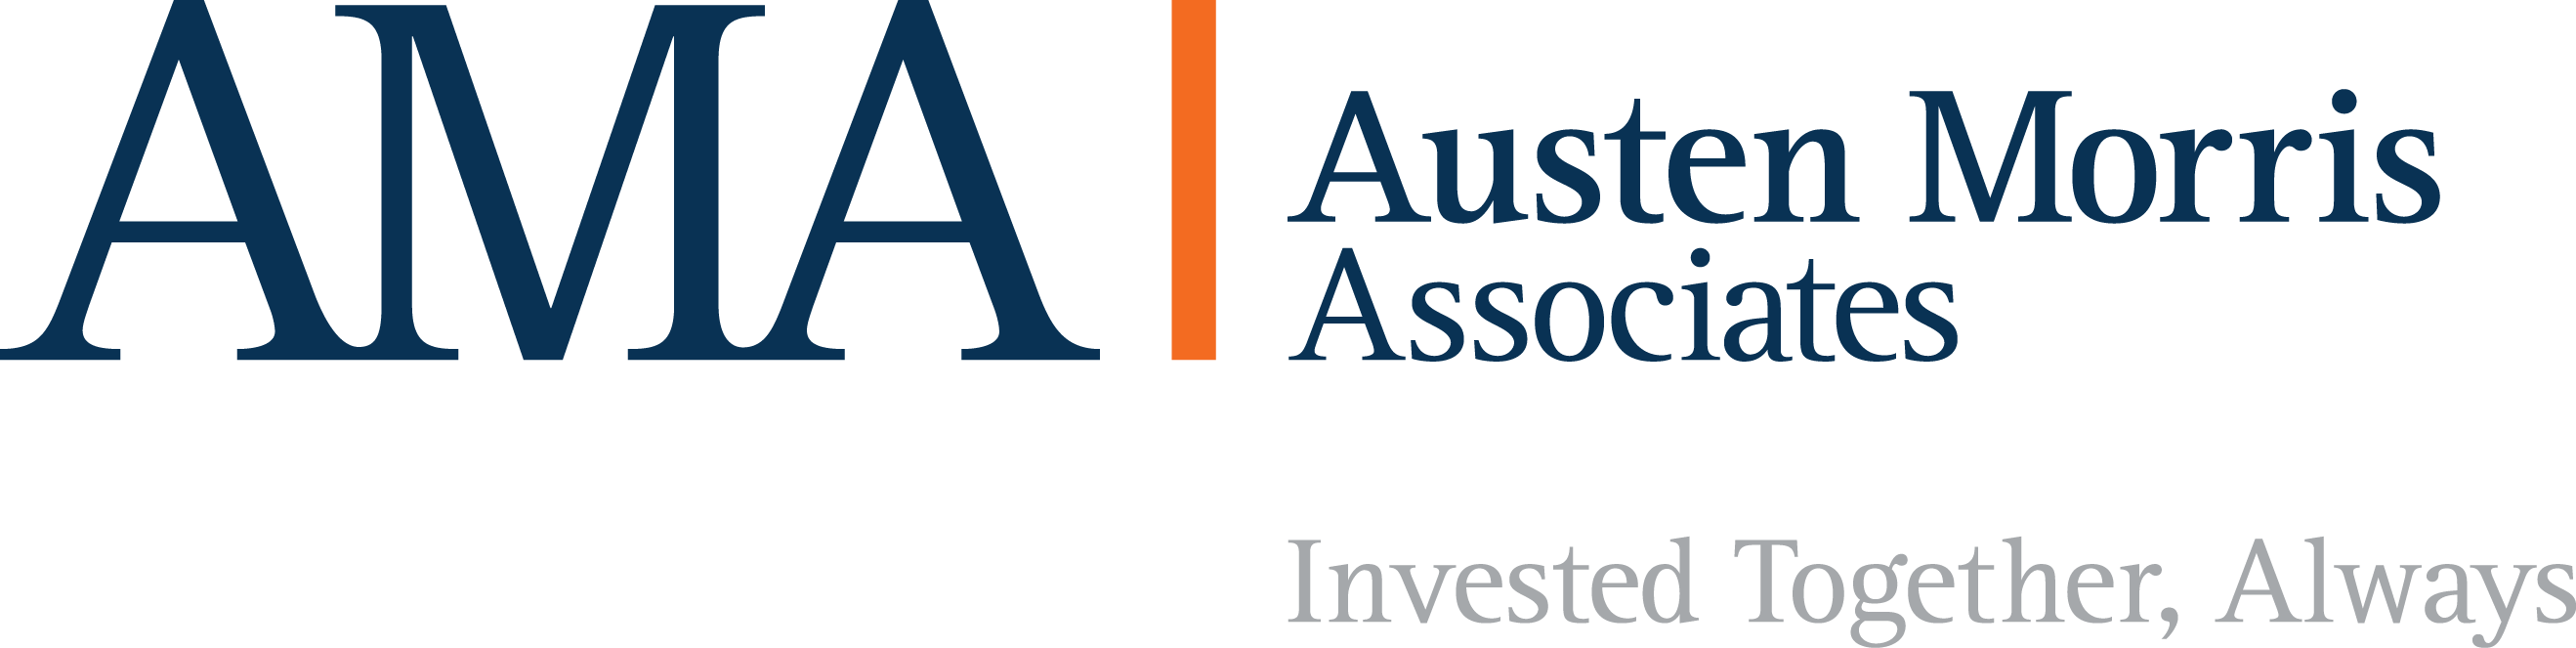 Austen Morris Associates | Wealth Management Services